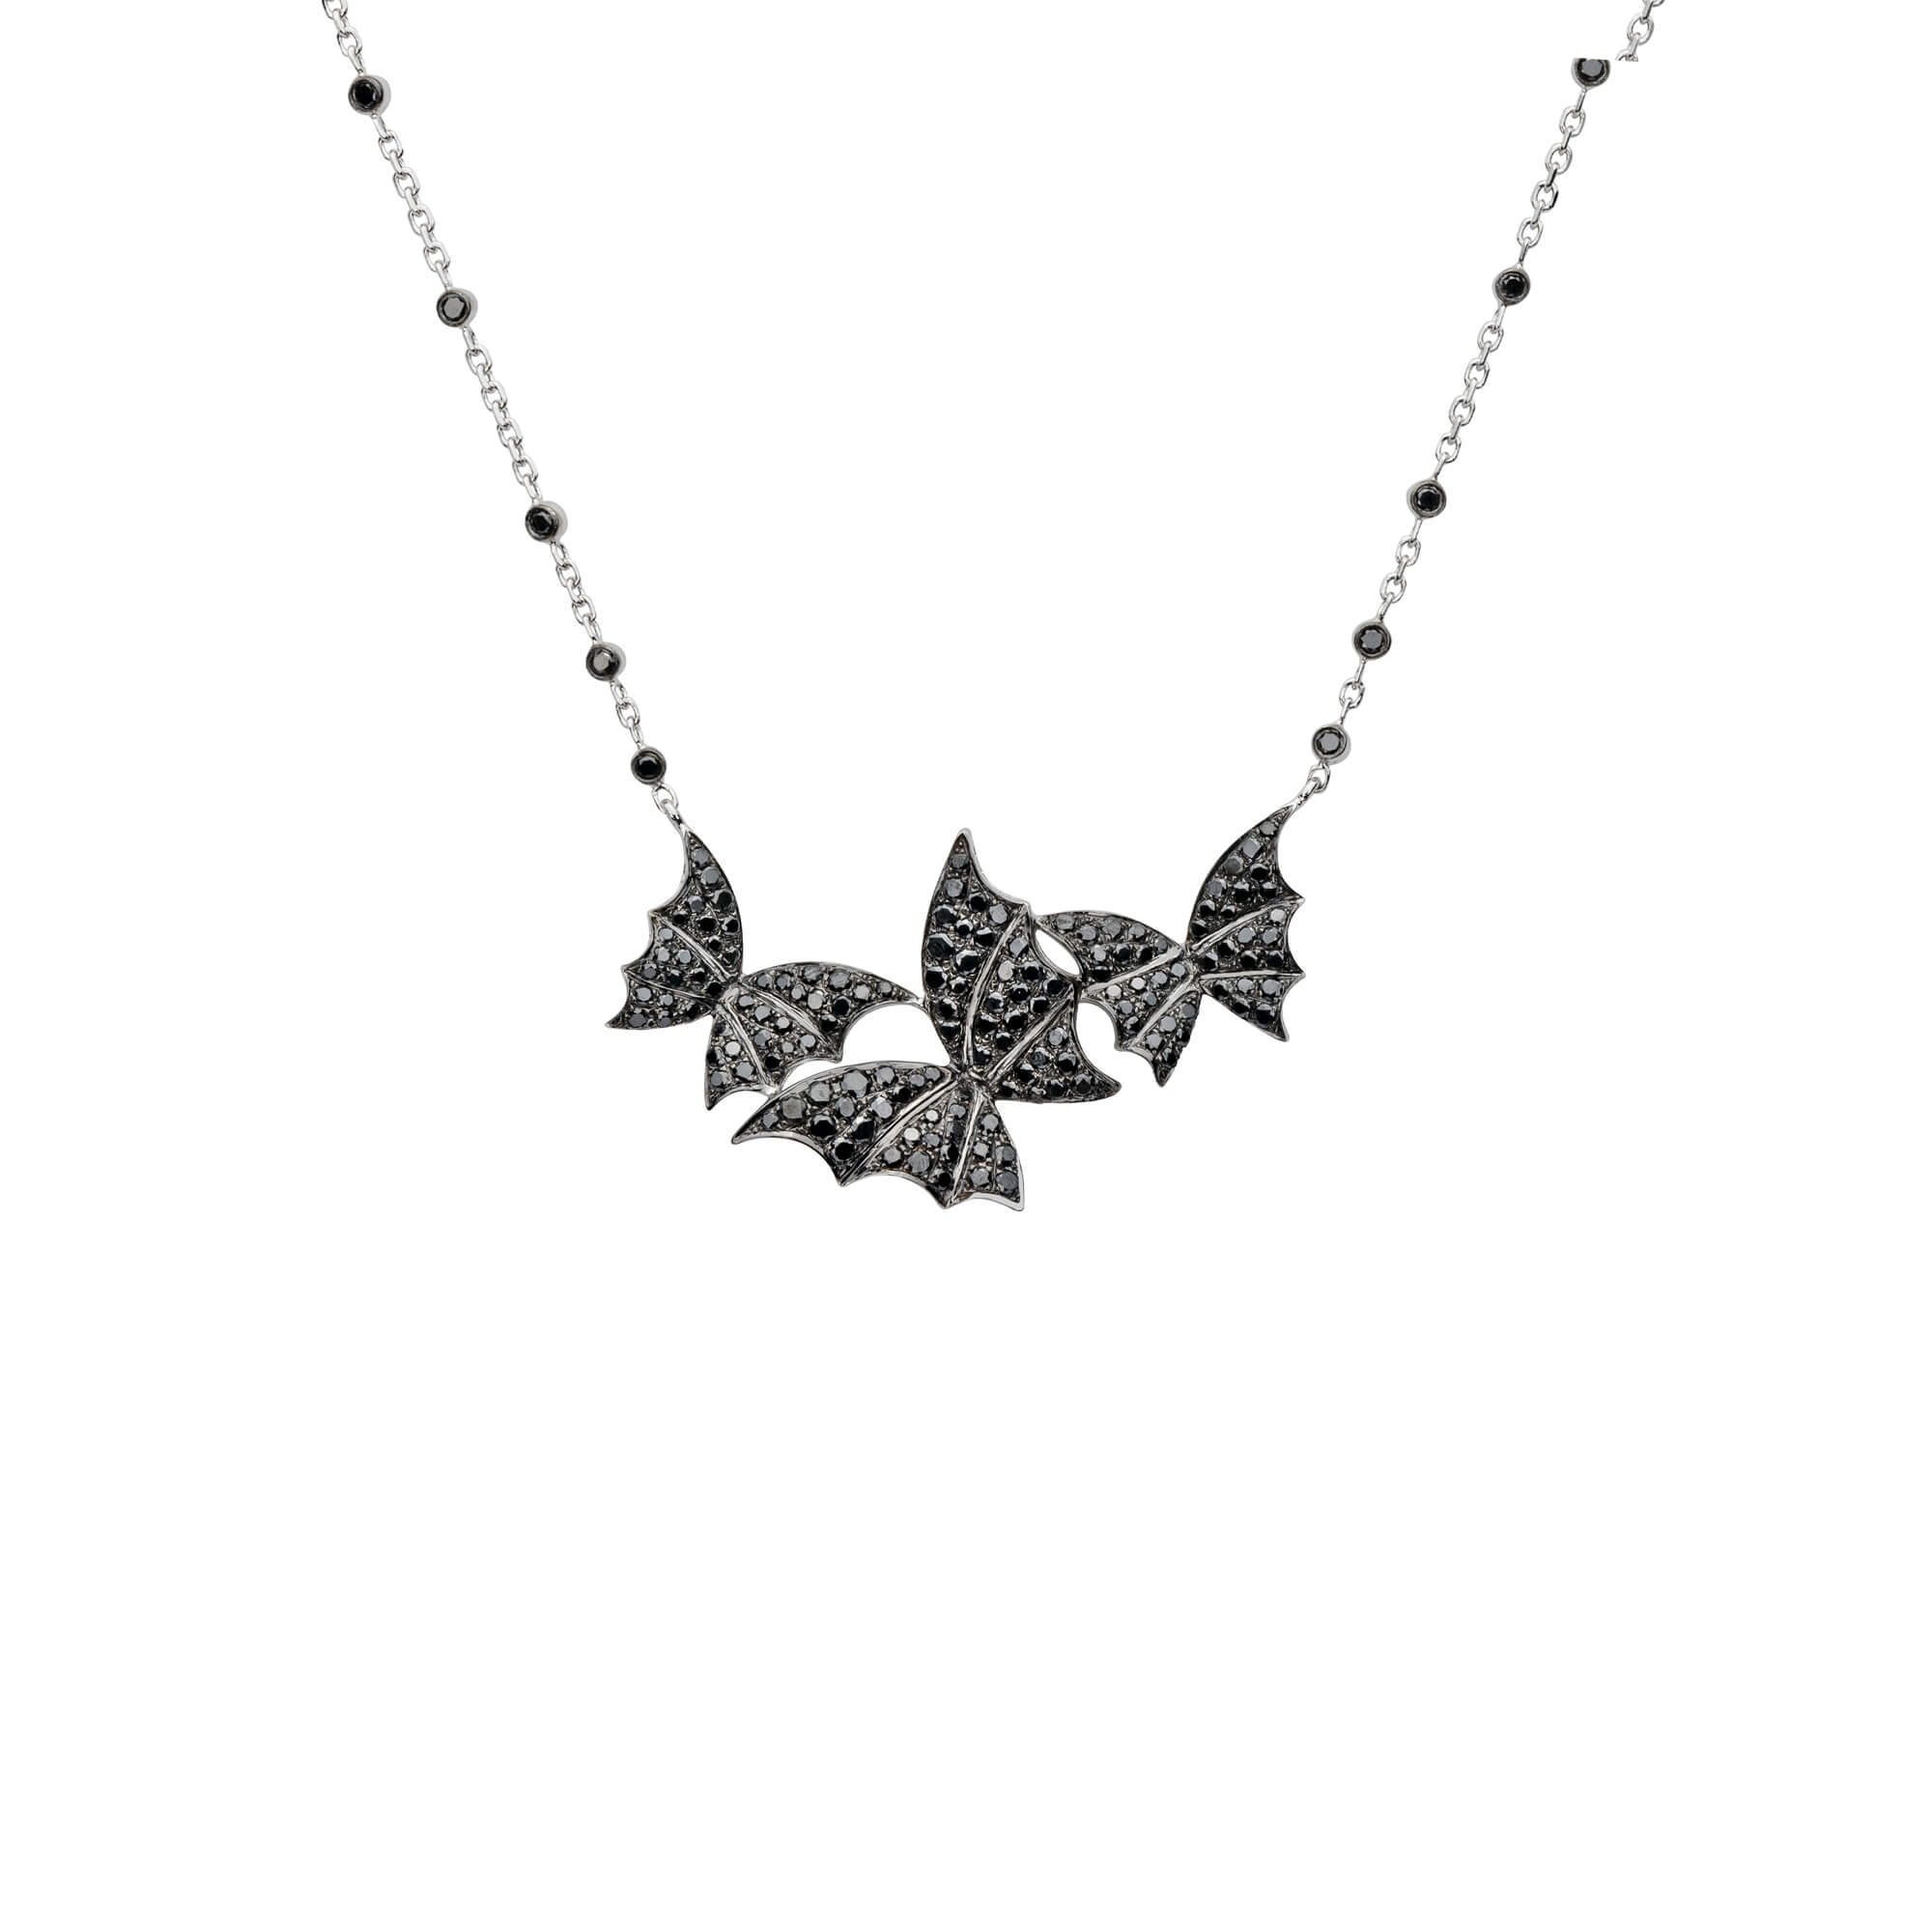 White Gold & Black Diamond Pavé Necklace | Fly By Night